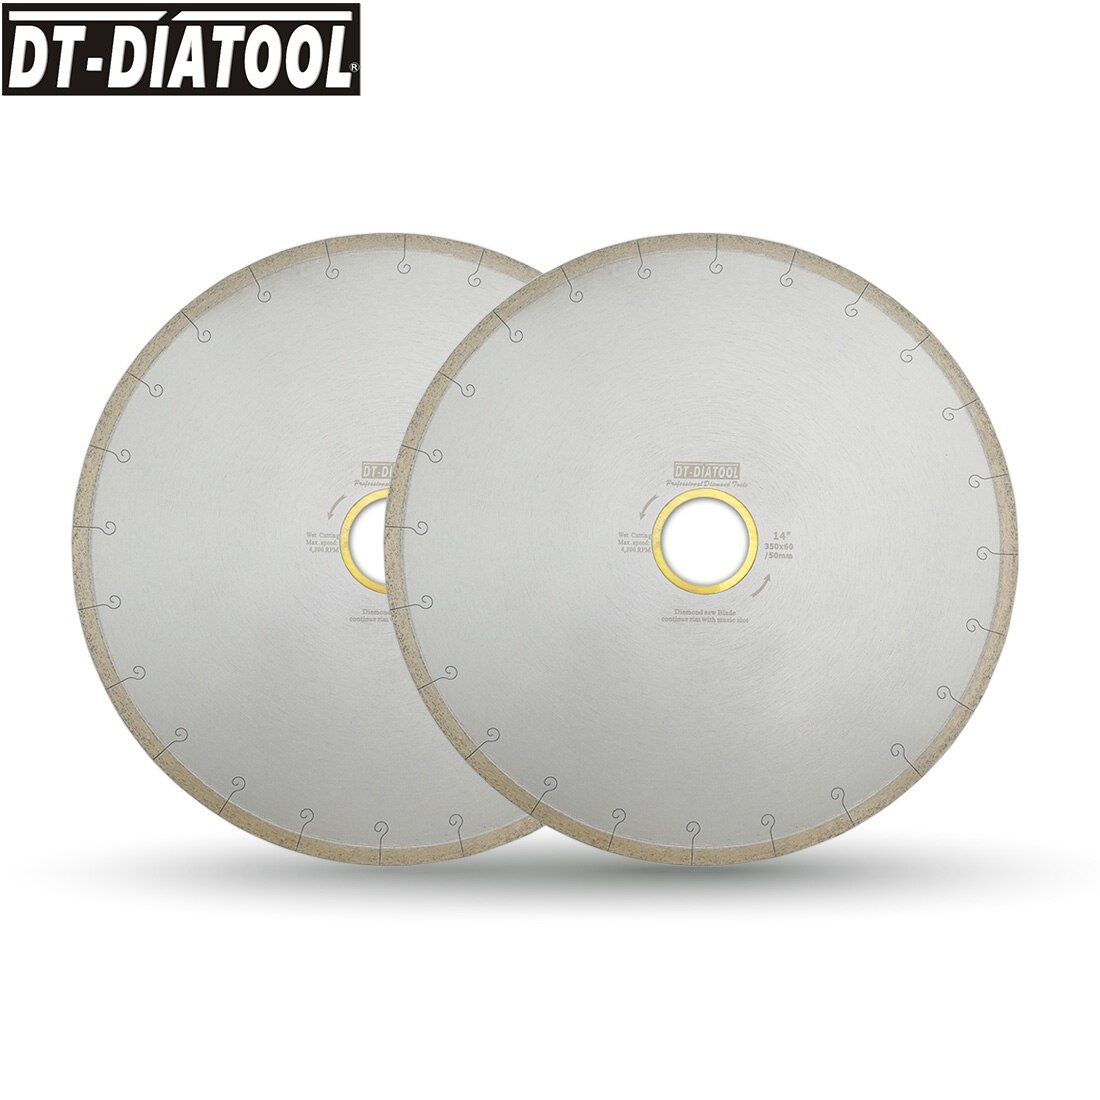 DT-DIATOOL 2pcs 300/350mm Wet Diamond Ceramic Cutting Disc Saw Blades With Hook Slot Bore 60mm with 50mm Reducer For Tile Marble